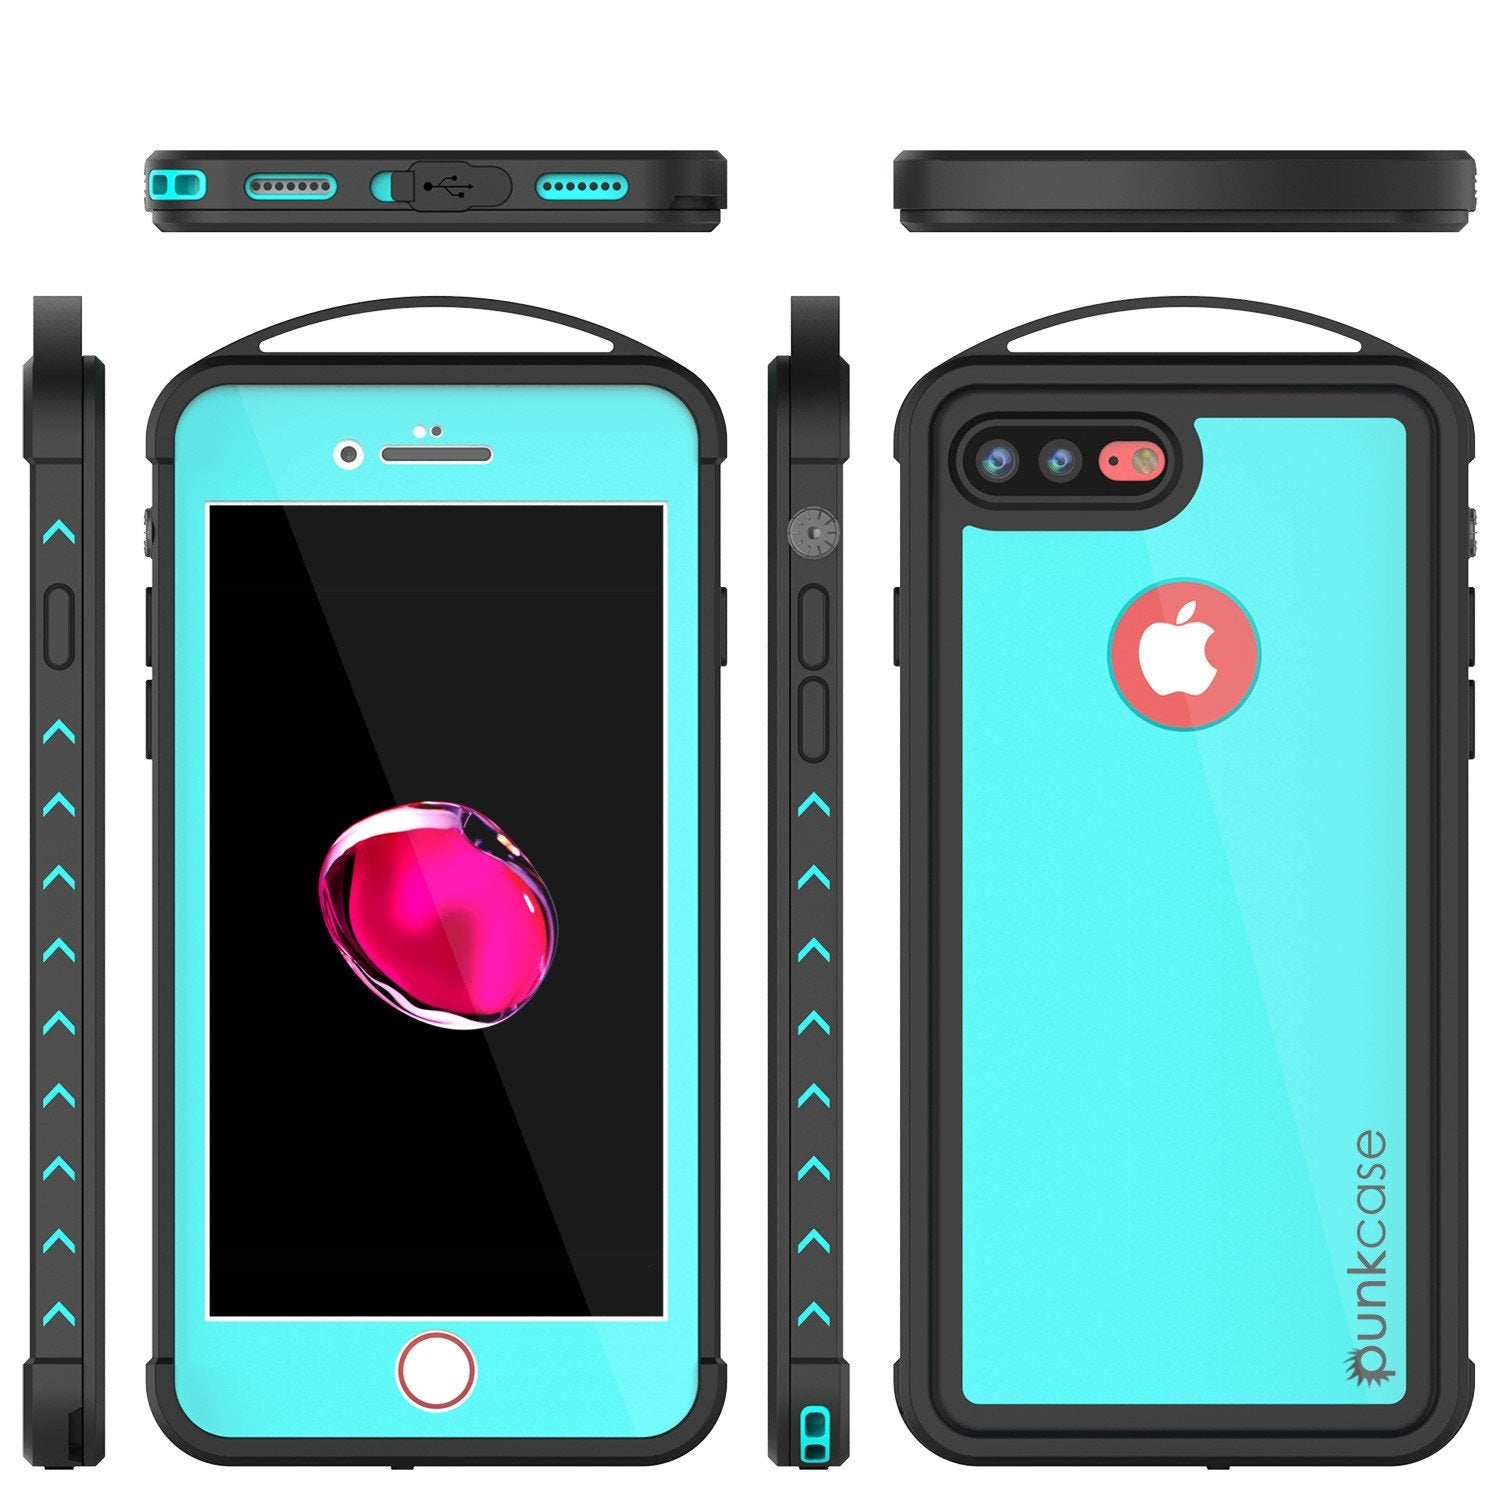 iPhone 7+ Plus Waterproof Case, Punkcase ALPINE Series, Teal | Heavy Duty Armor Cover